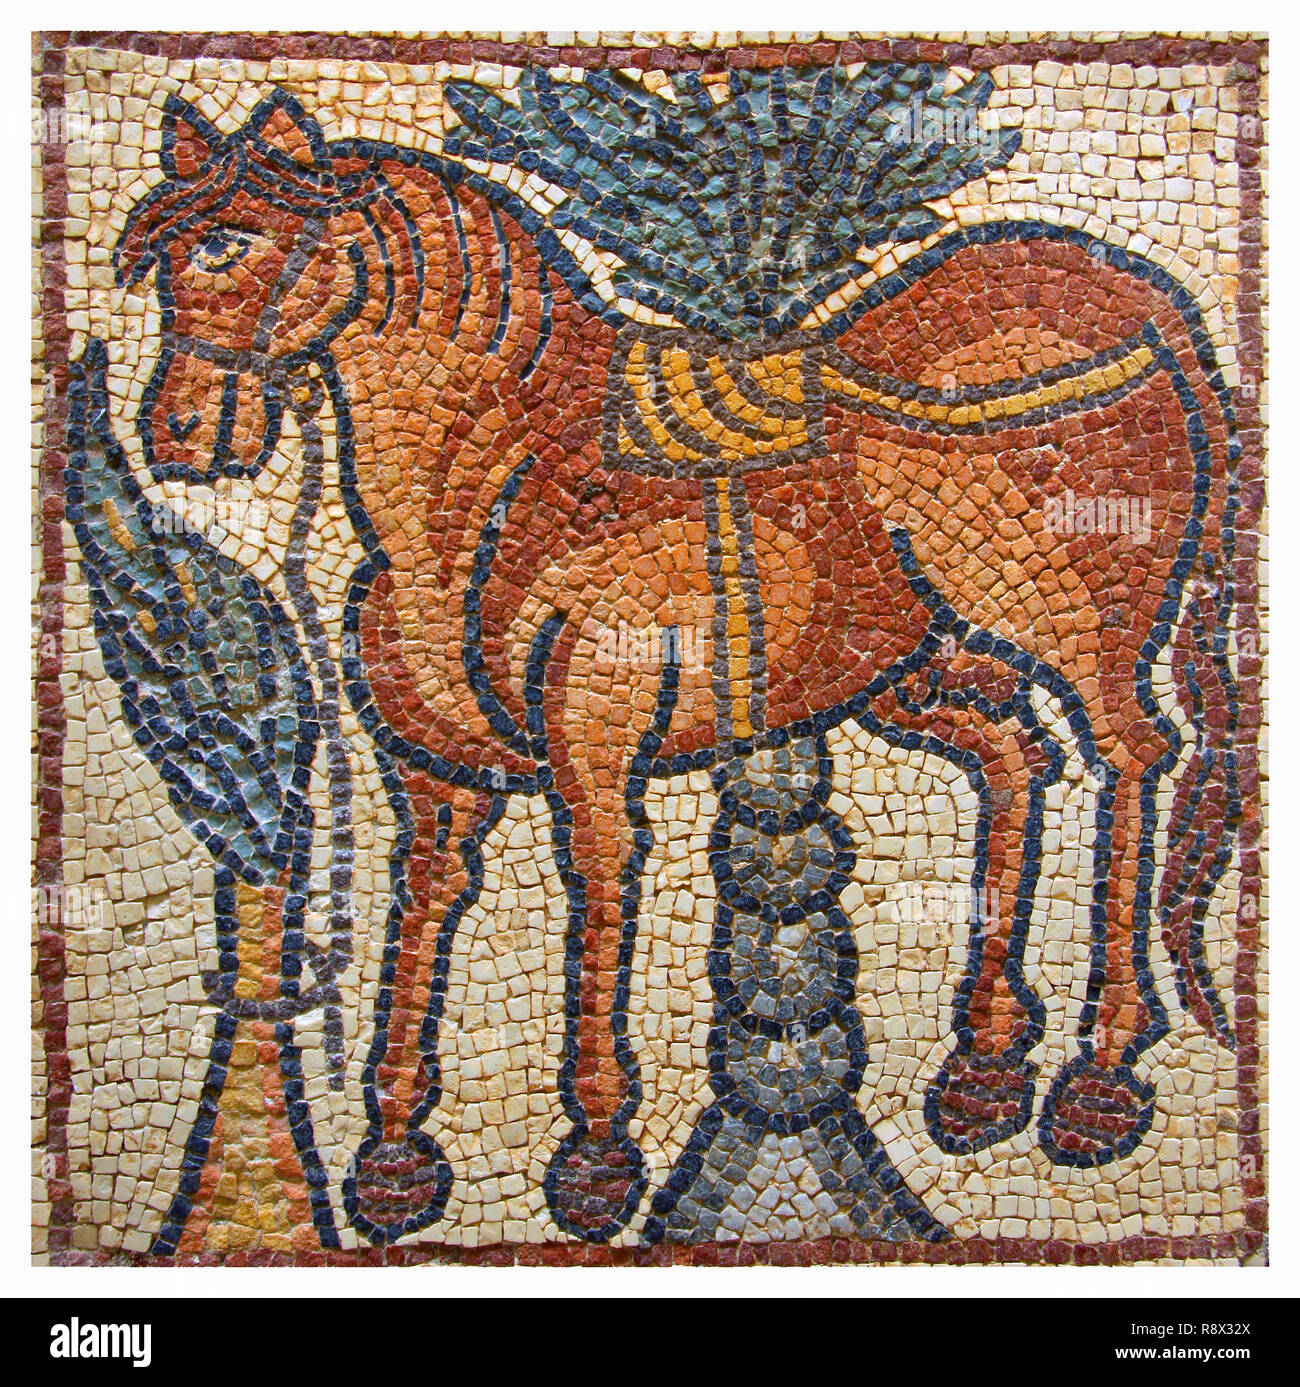 Libya Cyrenaica Qsar Ancient well preserved Byzantine mosaic depicting a horse - Stock Image